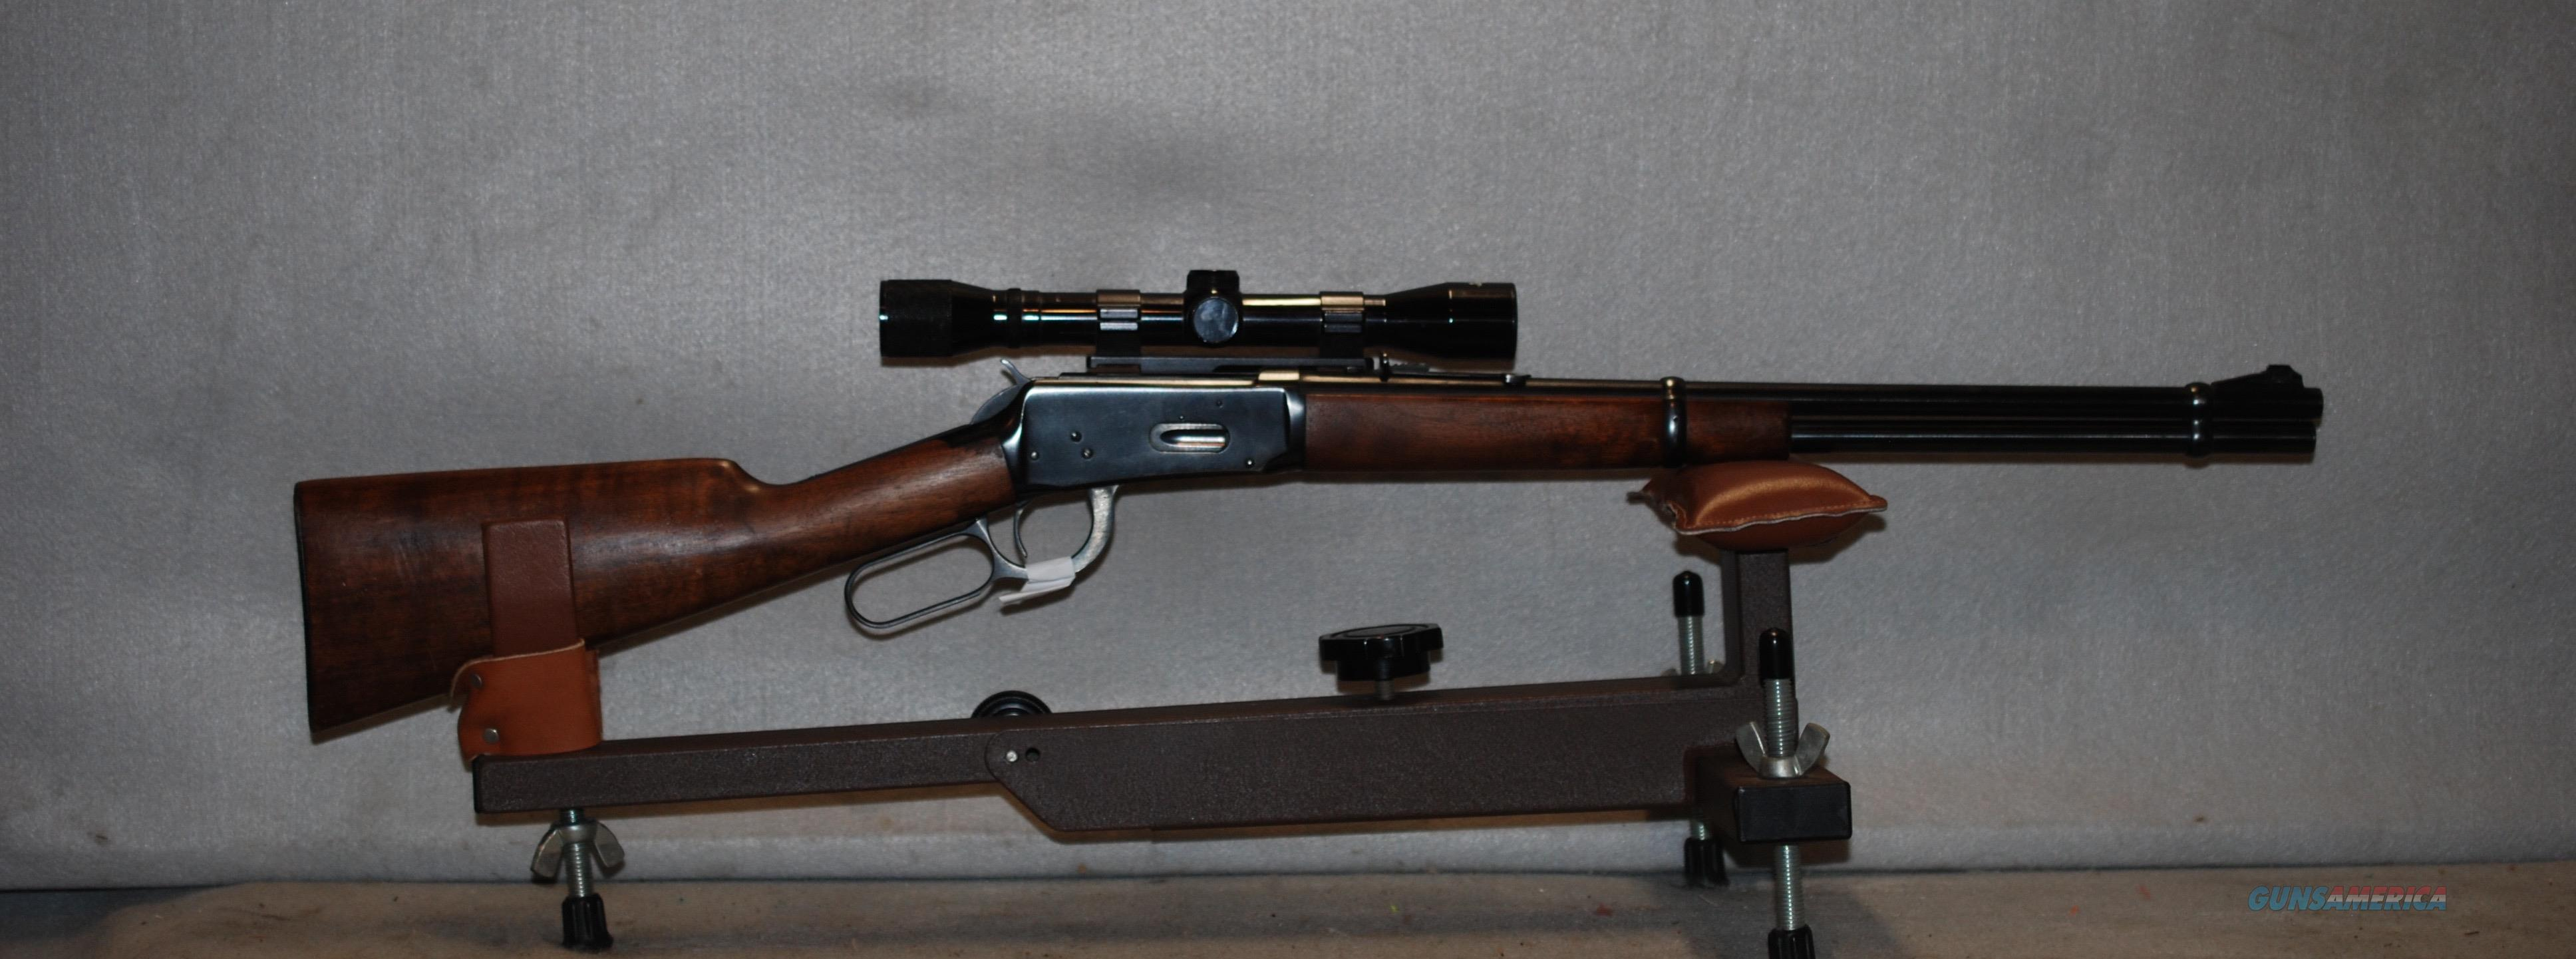 Winchester model 94, 1950 build  Guns > Rifles > Winchester Rifles - Modern Lever > Model 94 > Pre-64